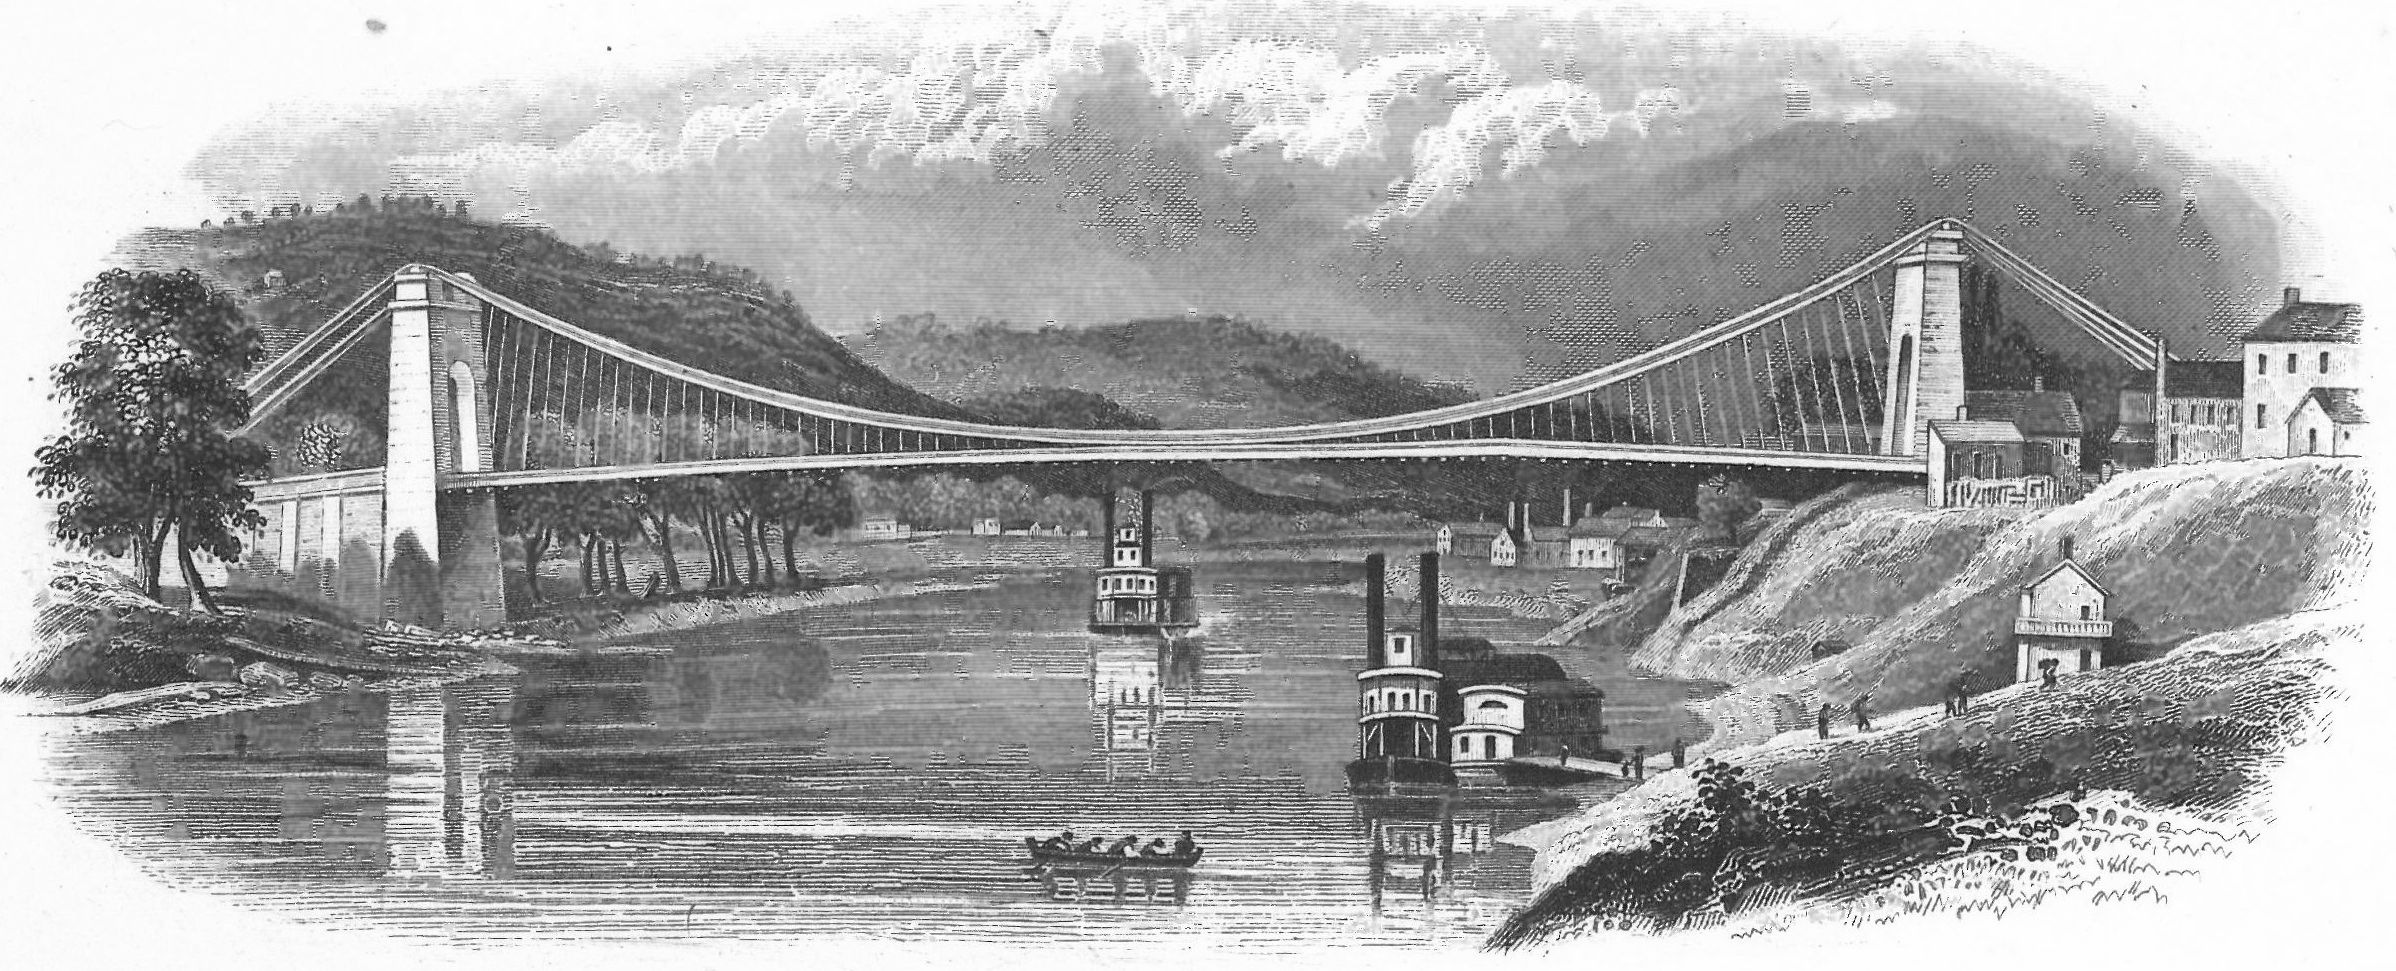 Stanton represented Pennsylvania in its suit against the Wheeling Suspension Bridge, which blocked steamboats from passing down the Ohio River.